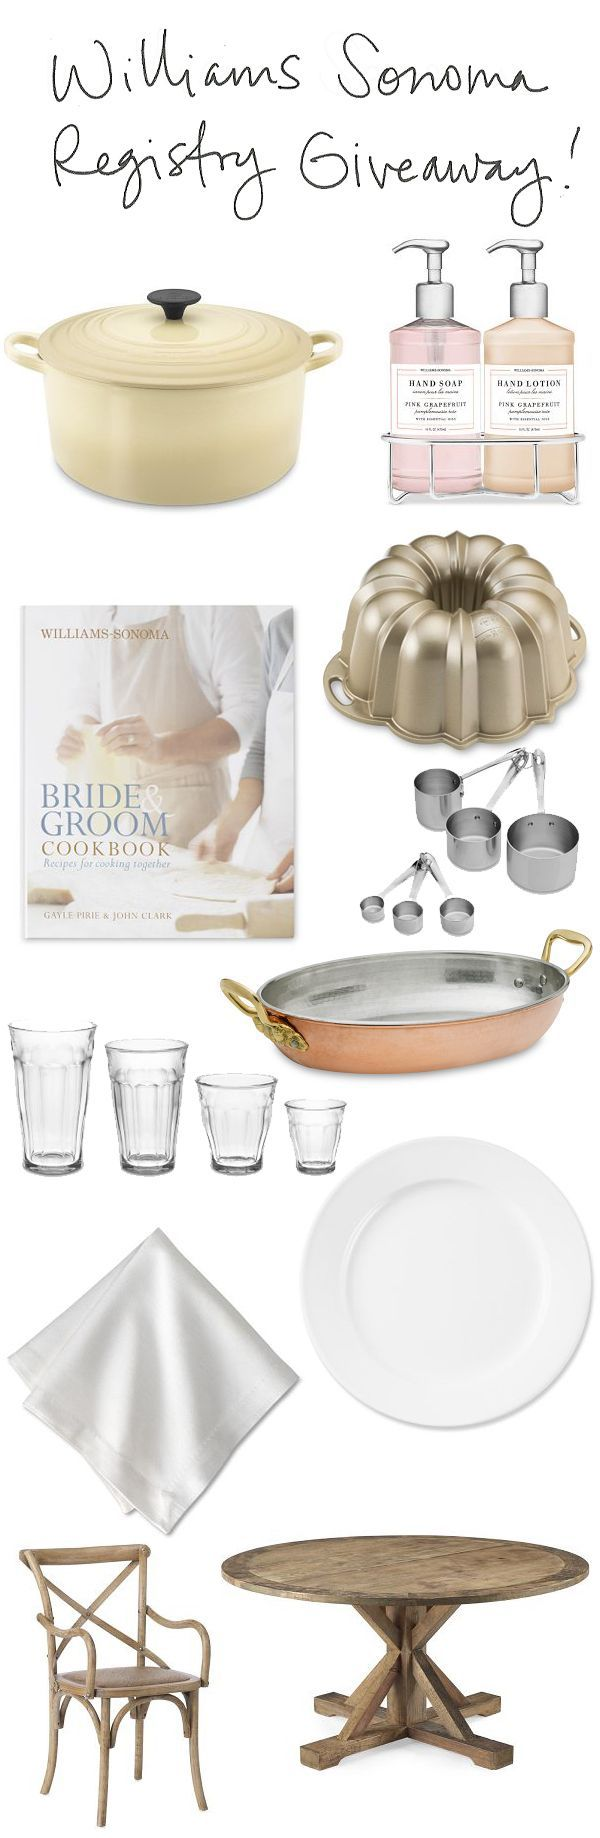 william sonoma giveaway williams sonoma 150 registry giveaway once wed 6452